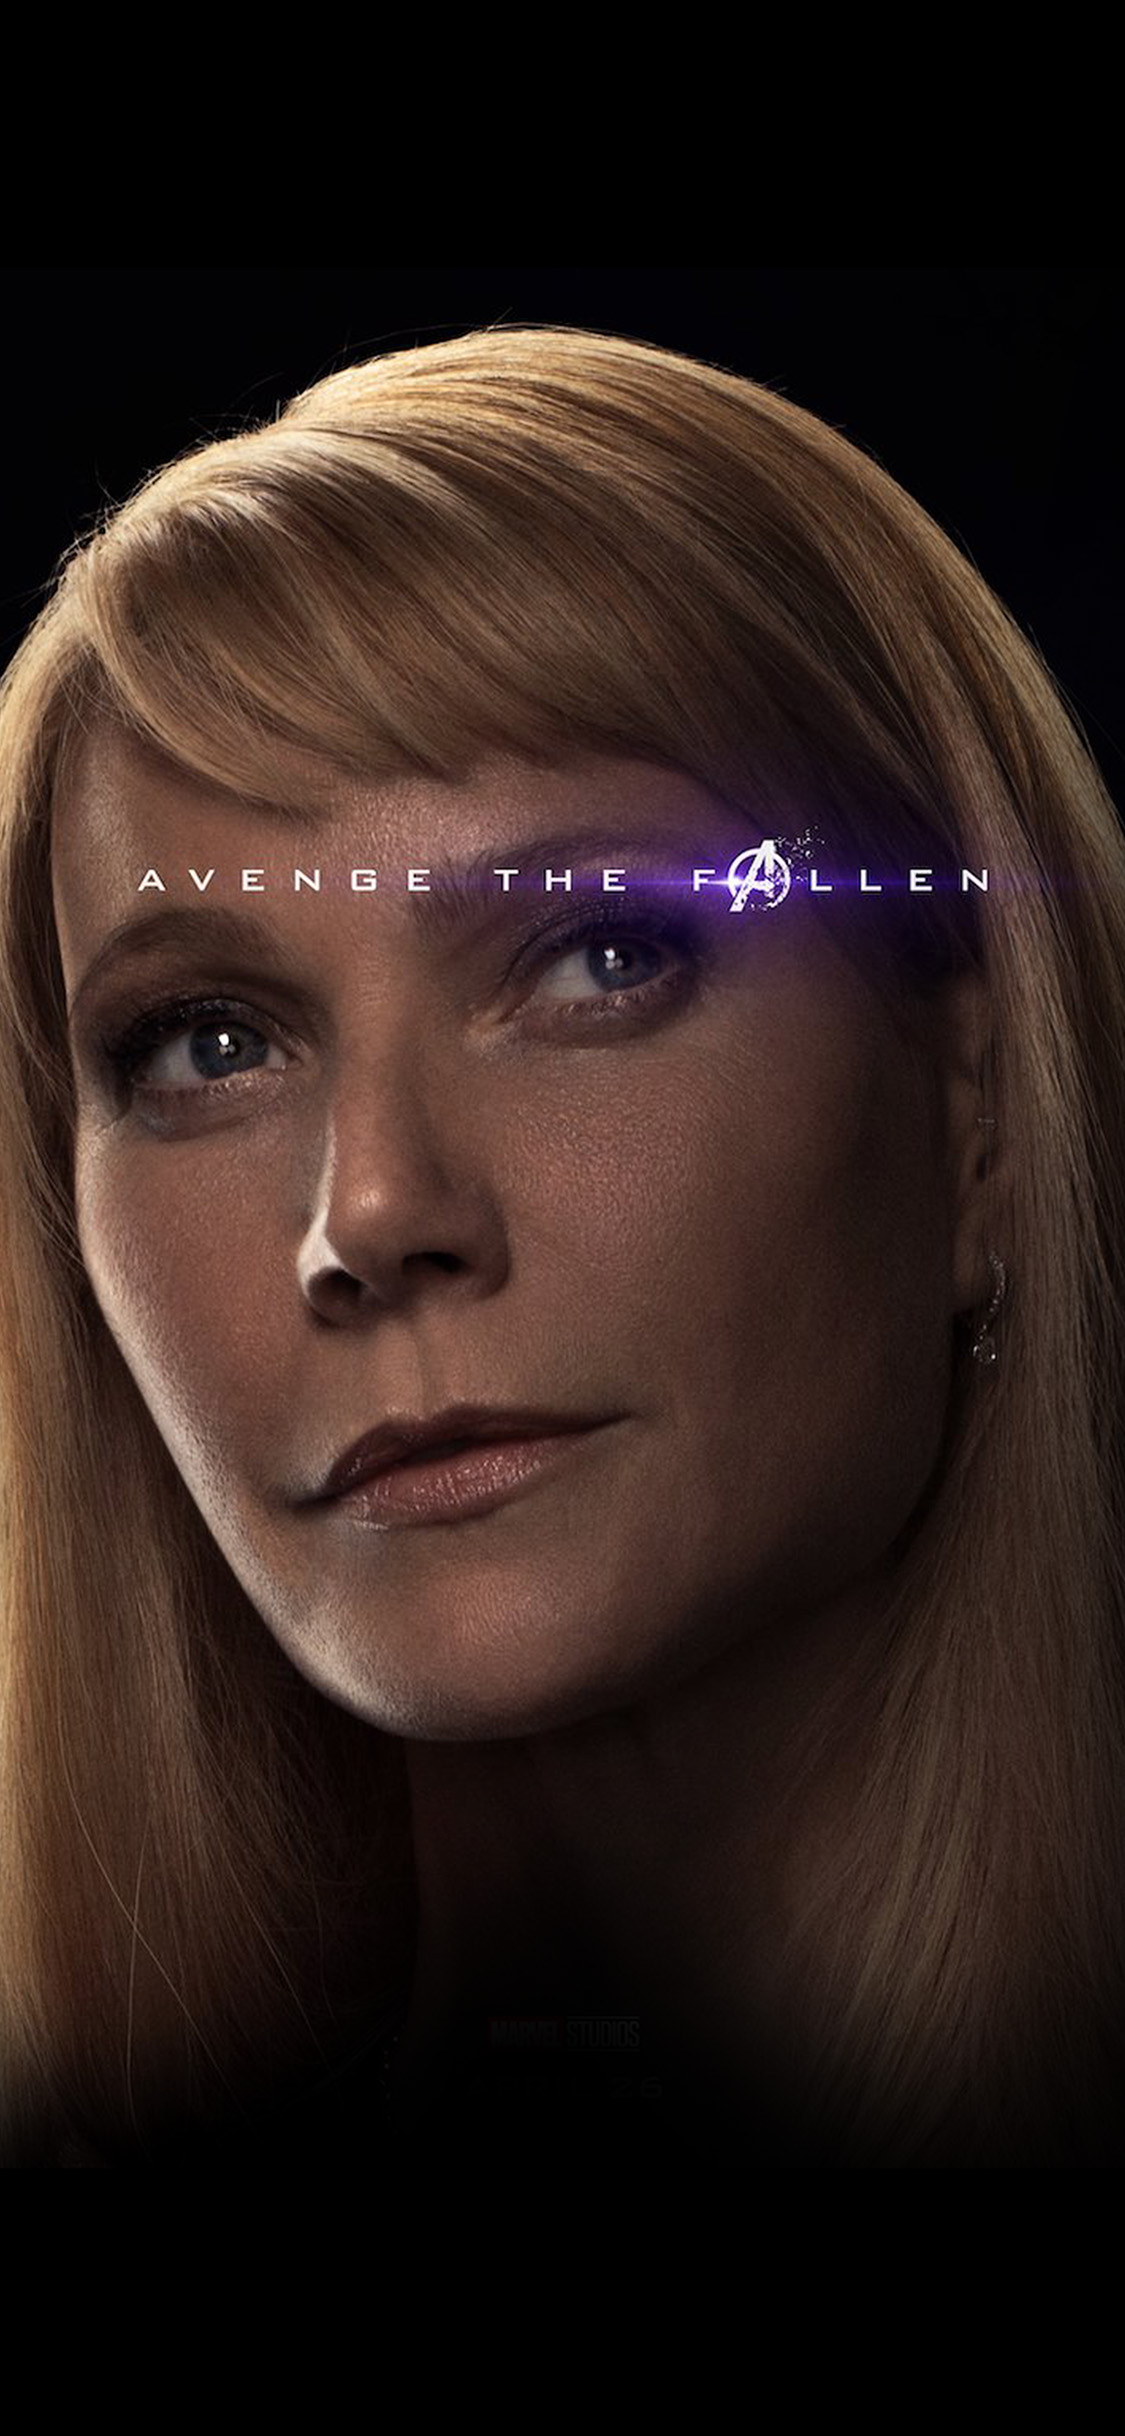 iPhonexpapers.com-Apple-iPhone-wallpaper-bi53-avnegers-marvel-endgame-hero-poster-film-celebrity-art